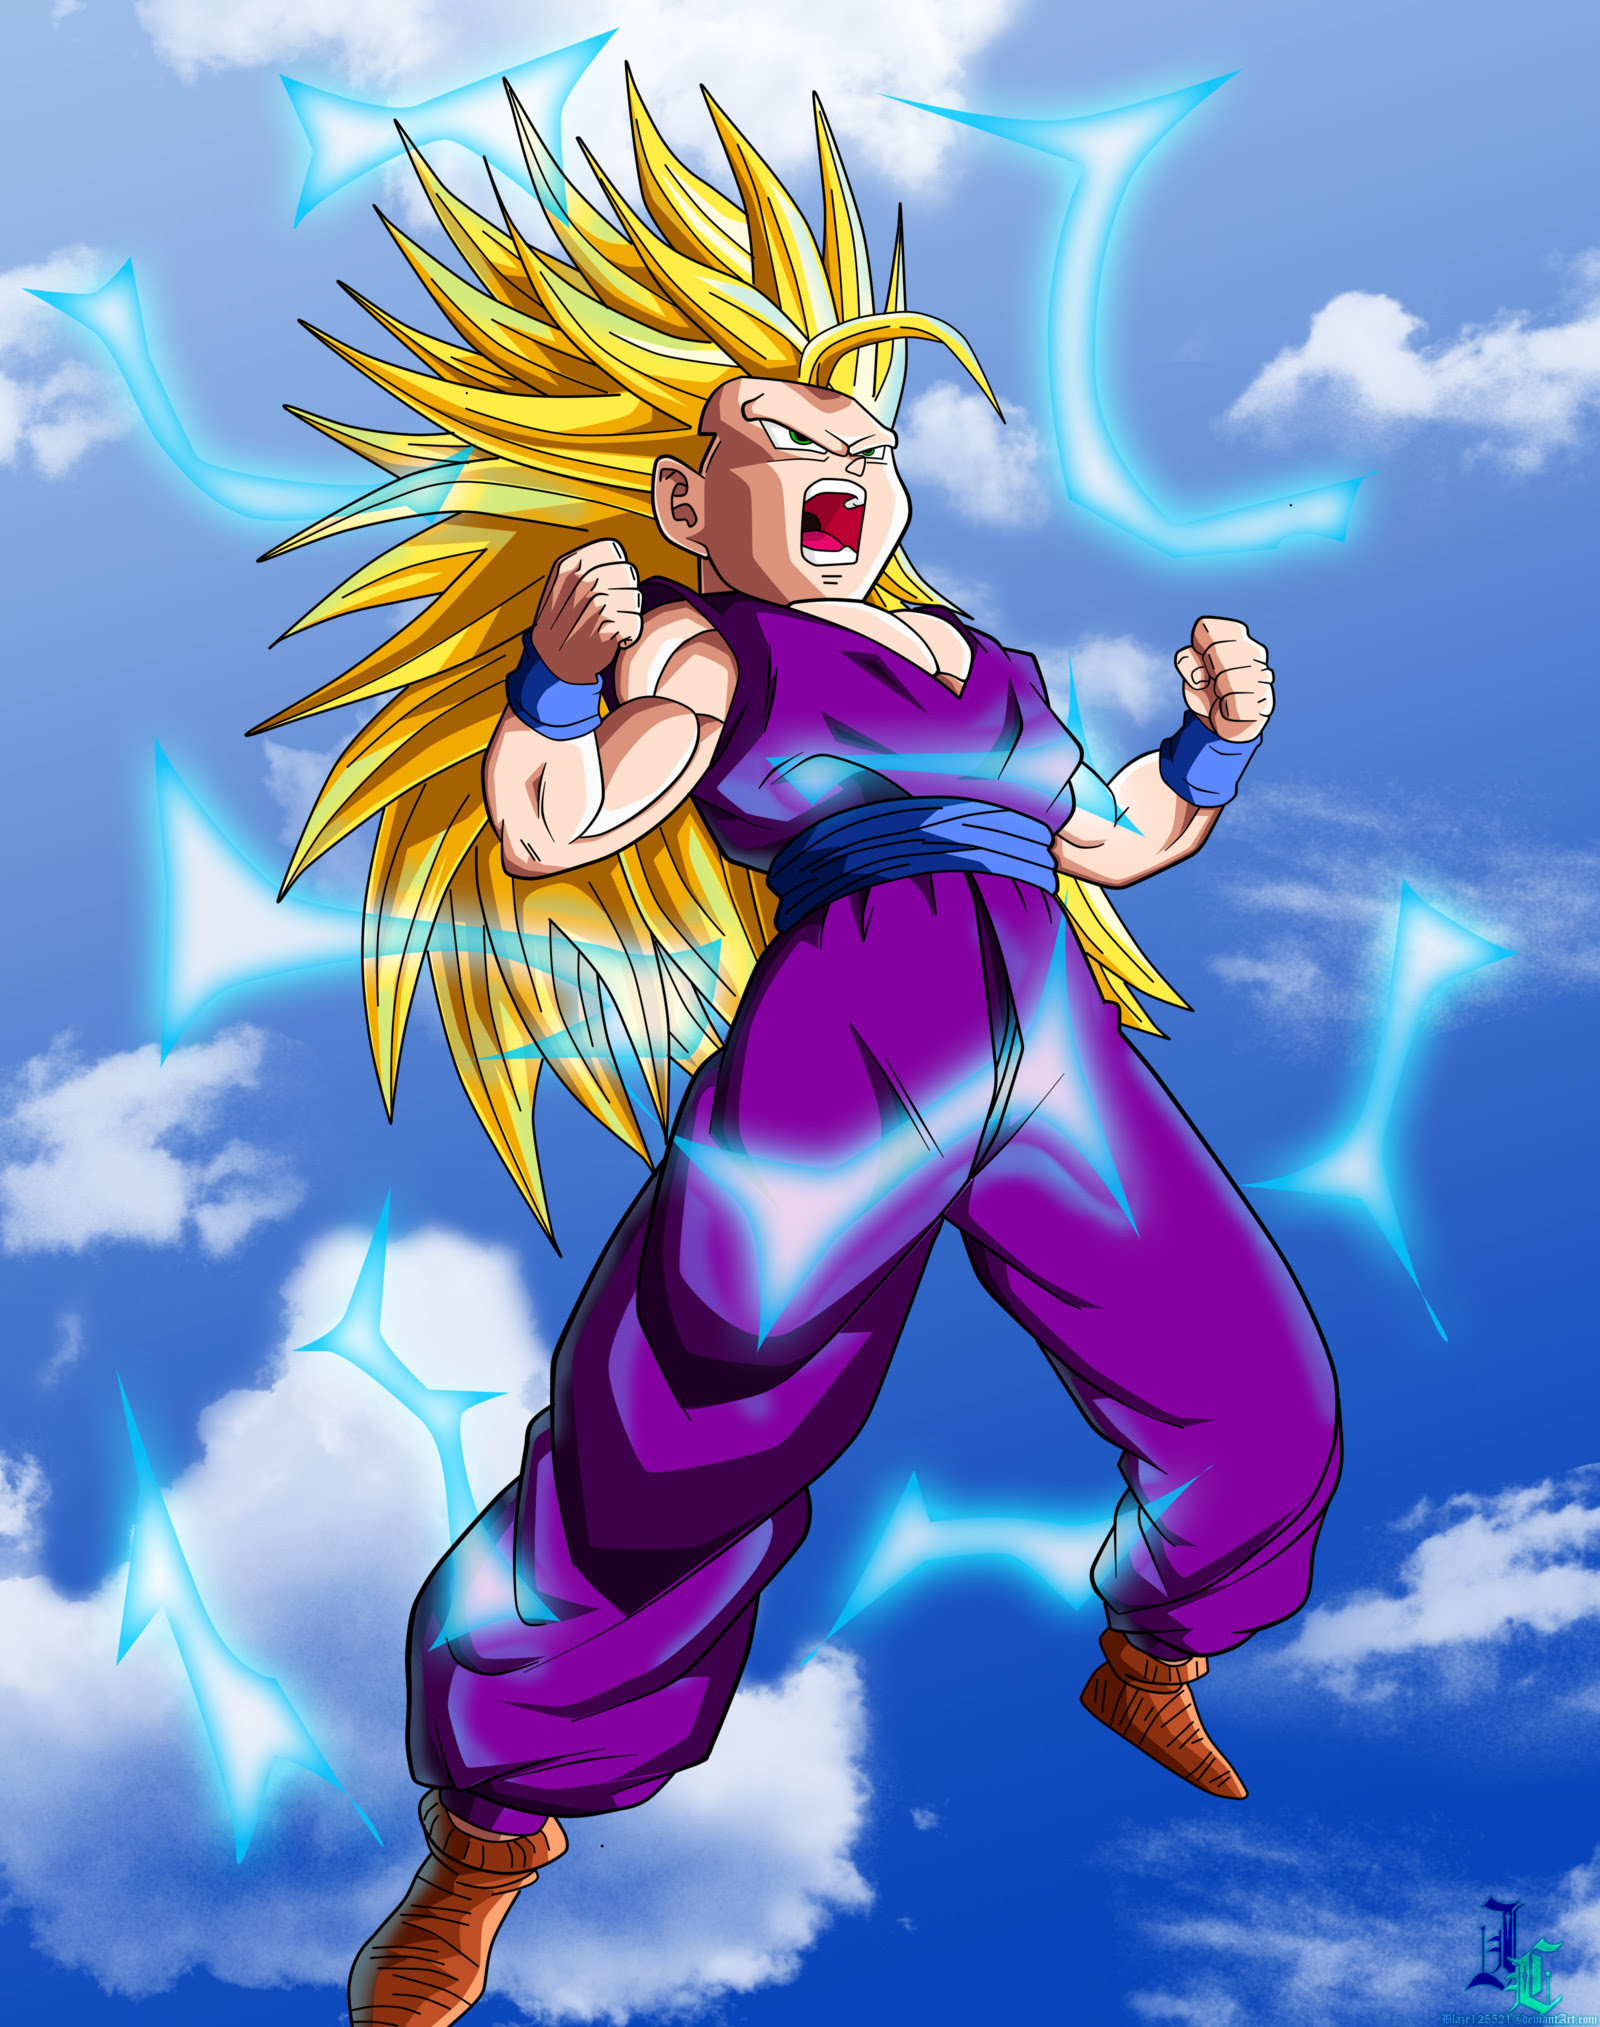 Teen Gohan Ssj2 Wallpaper 57 Images